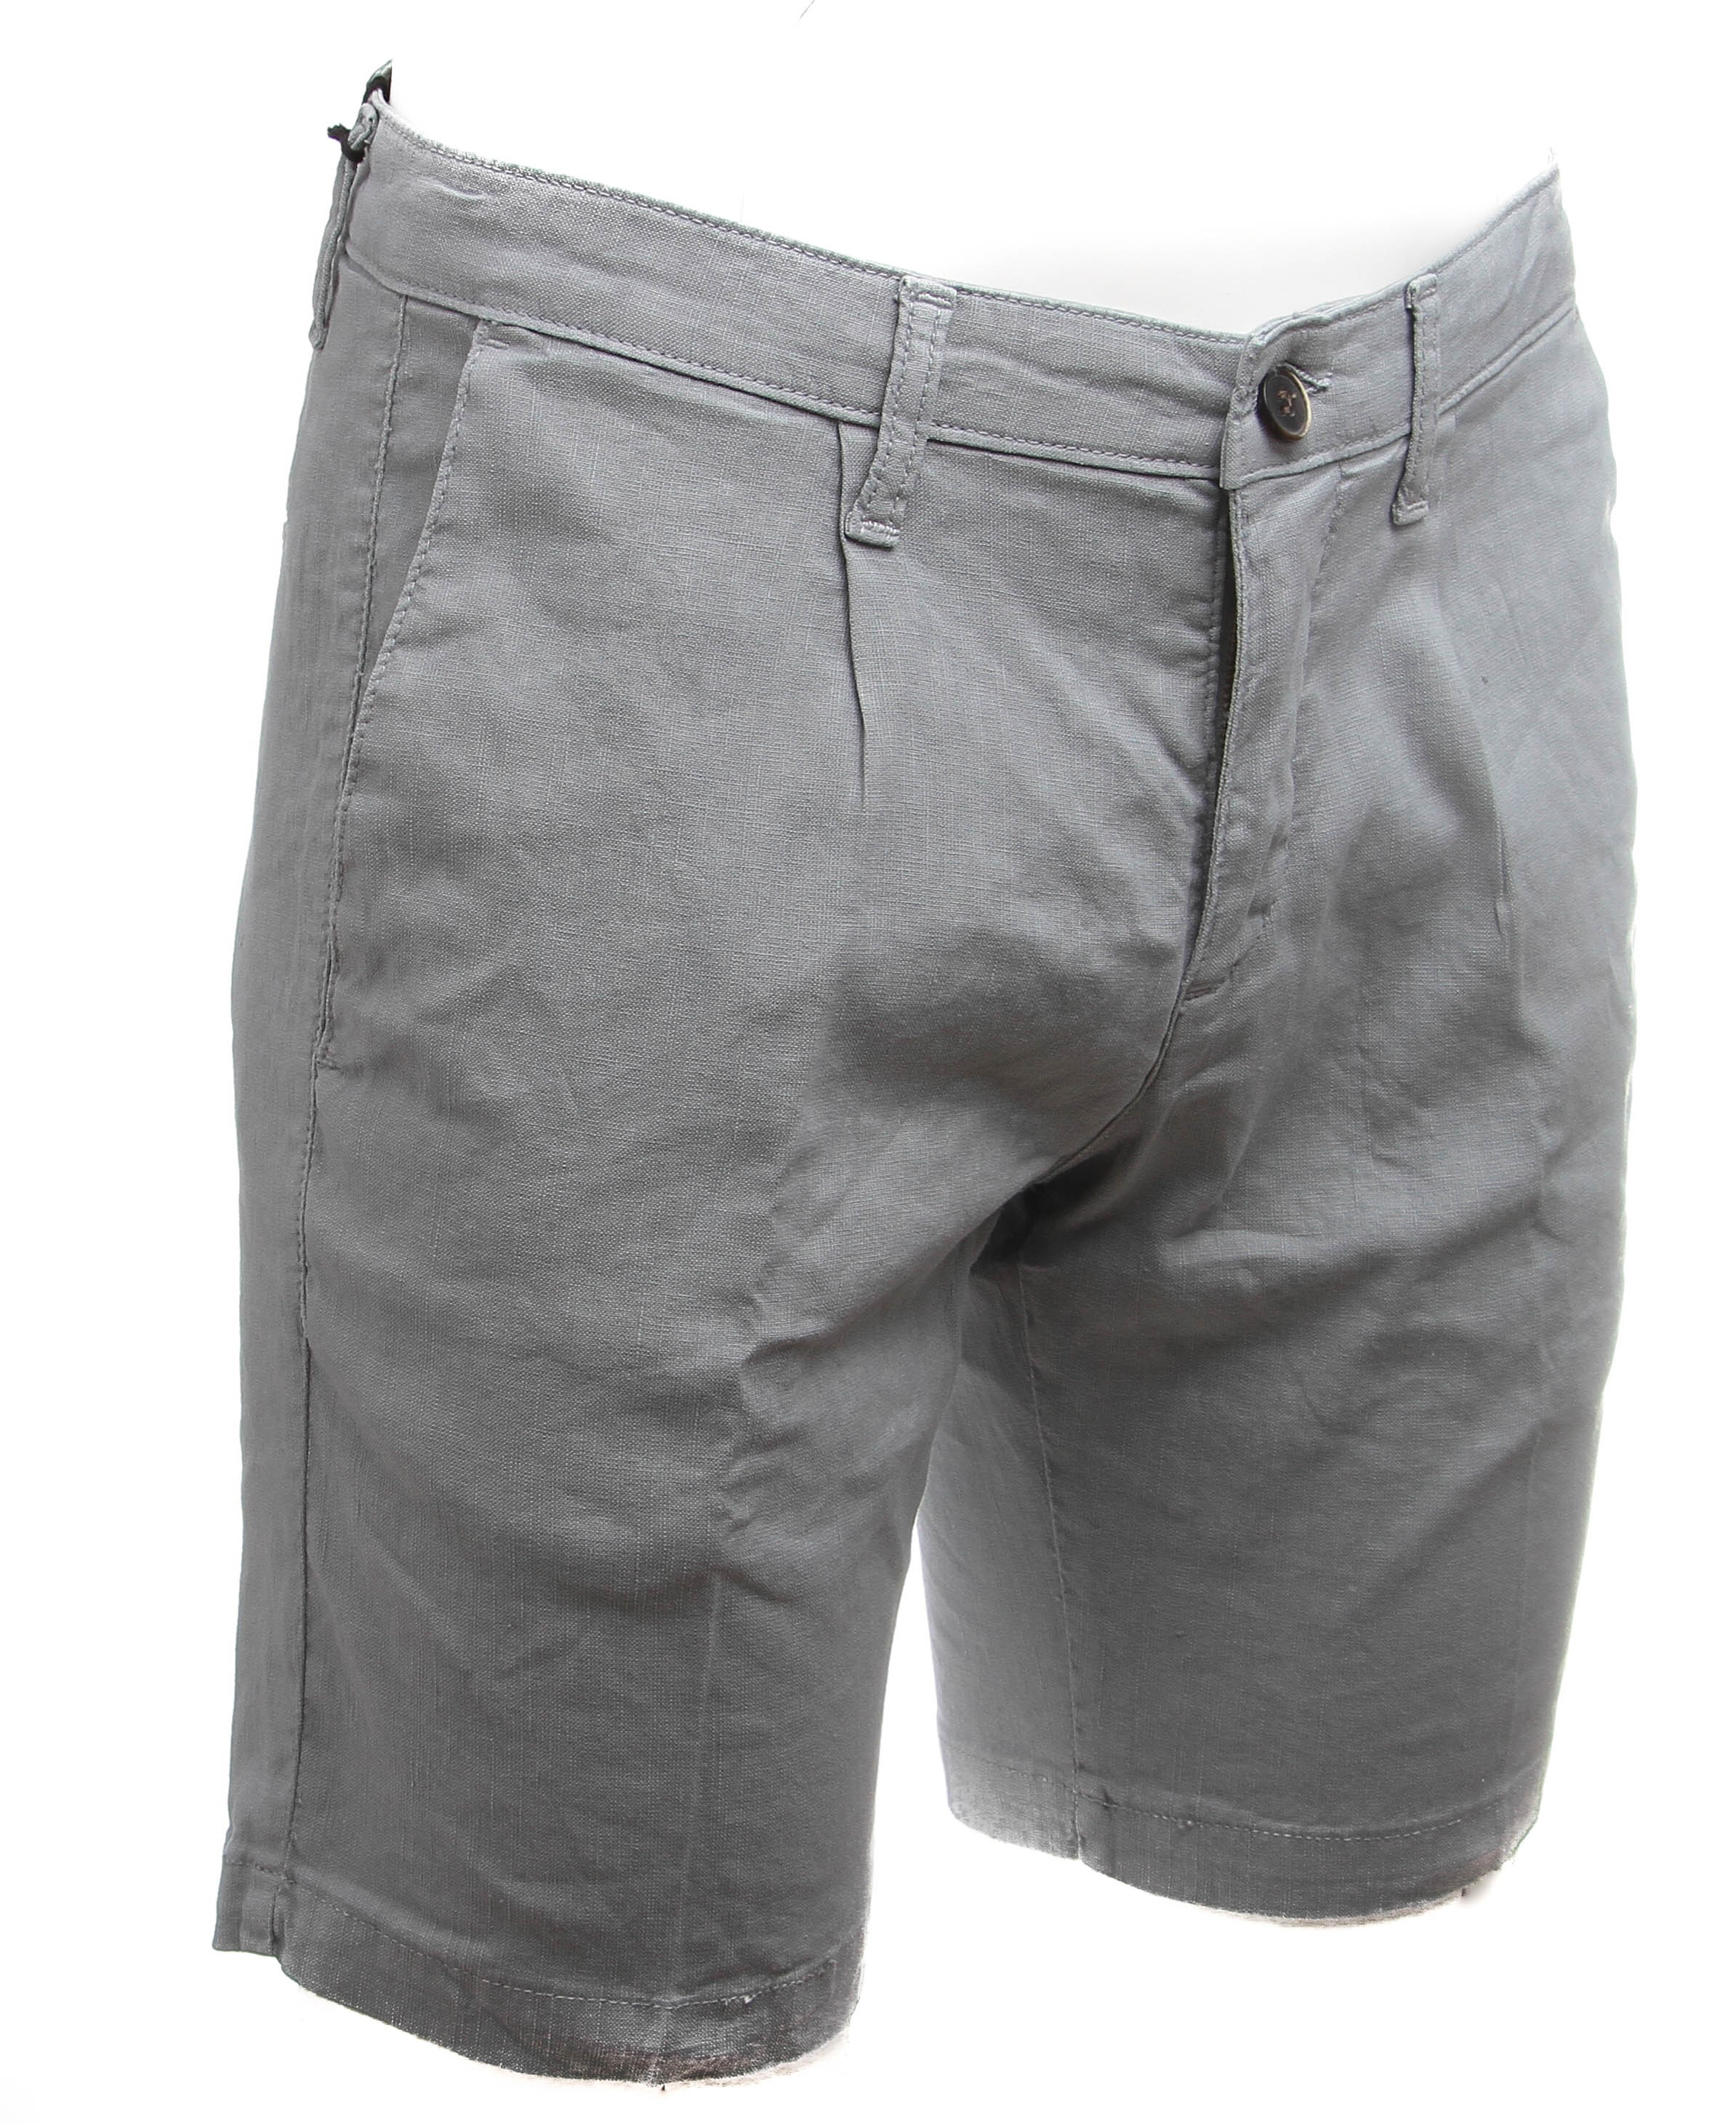 Short gris - Toile Summer (Bermudas)